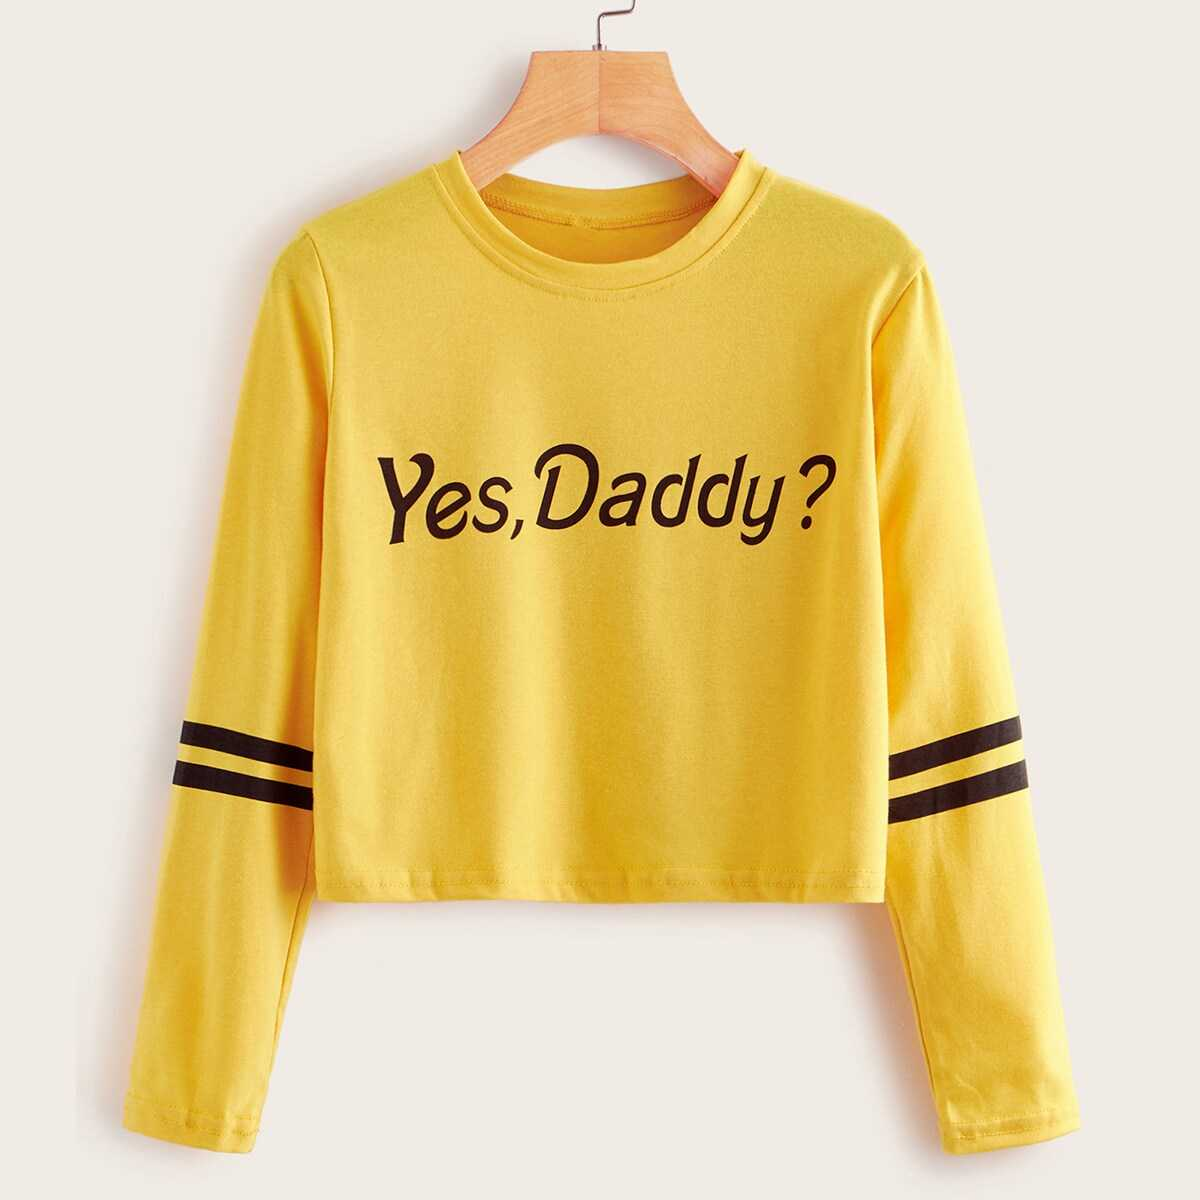 Striped Letter Print Crop Tee in Yellow by ROMWE on GOOFASH